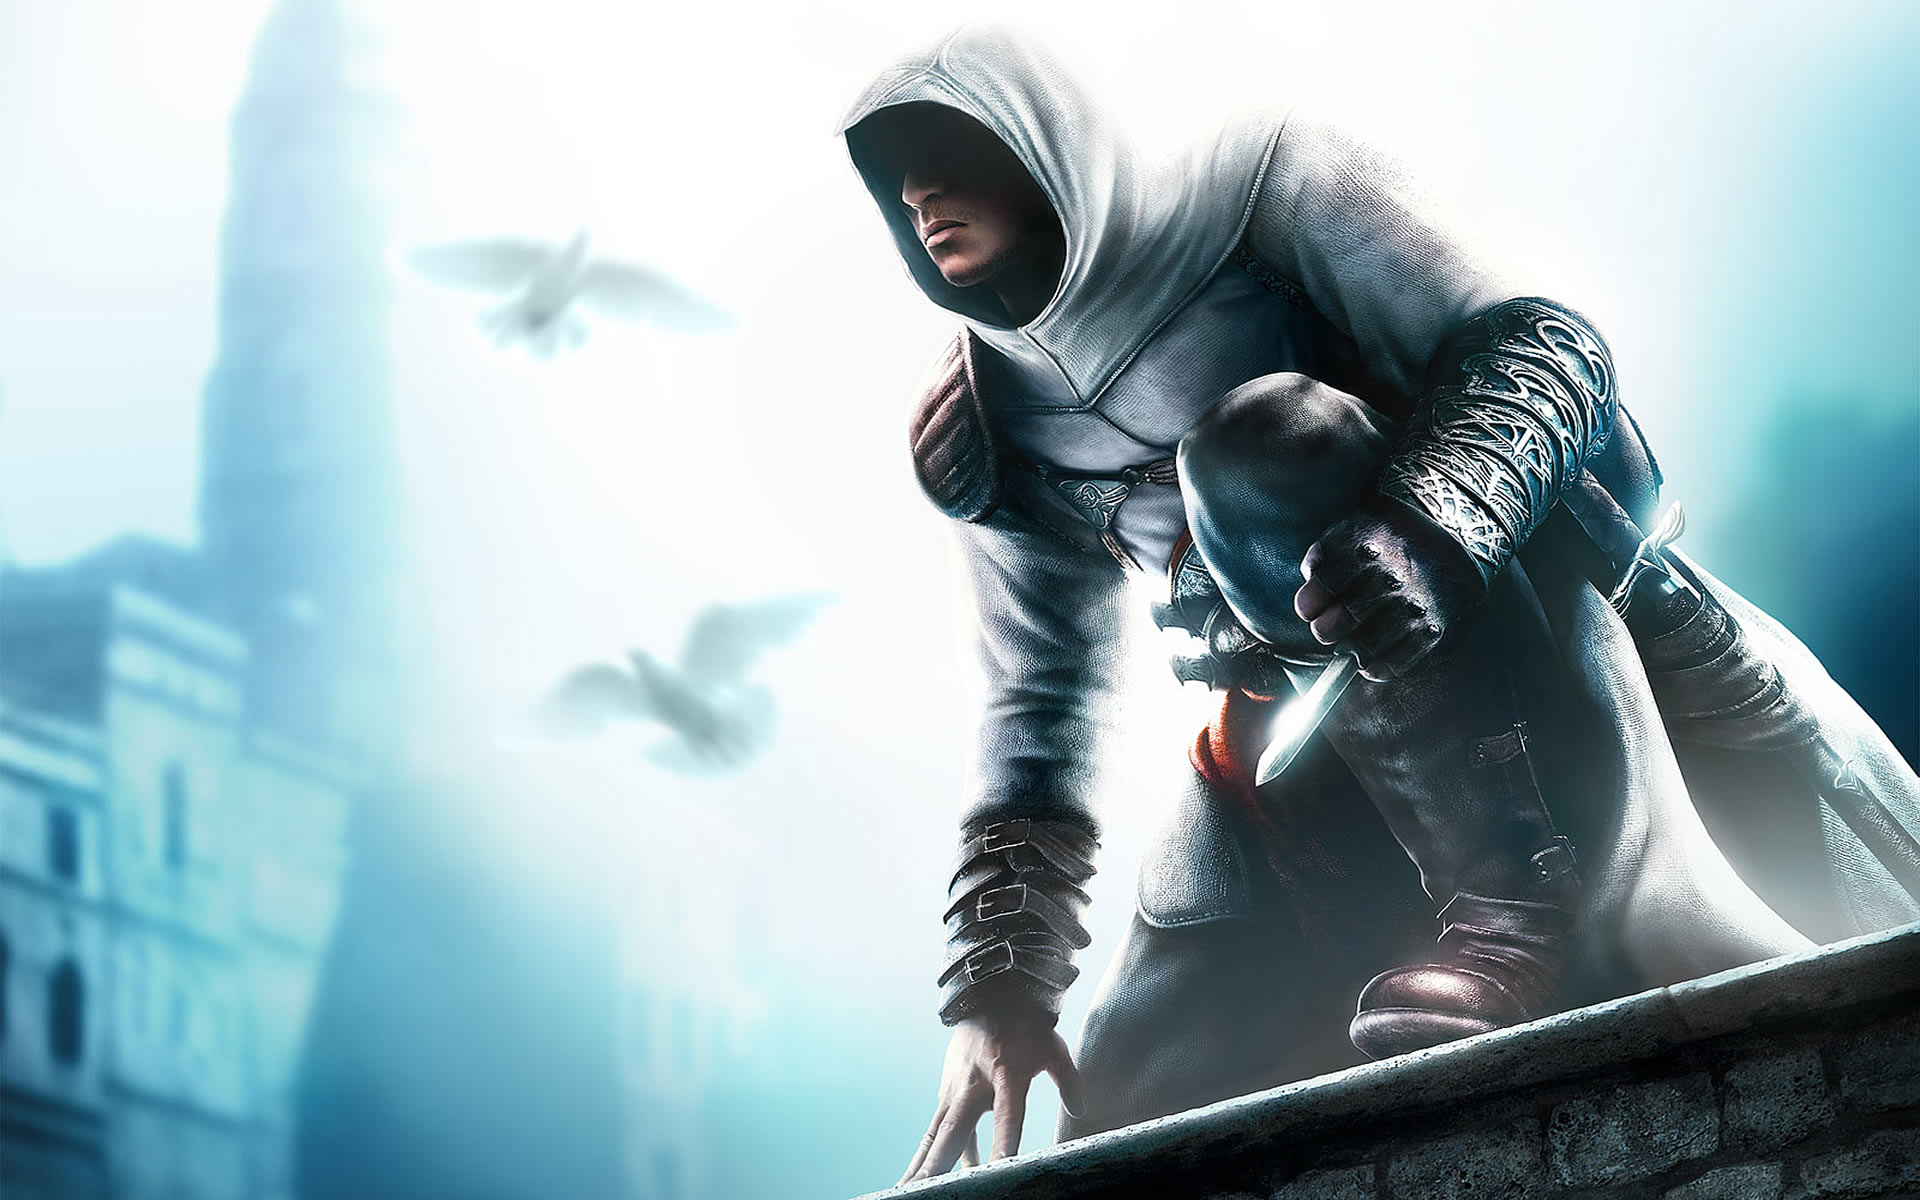 ... On Wall - Action Games Wallpaper Image featuring Assassins Creed